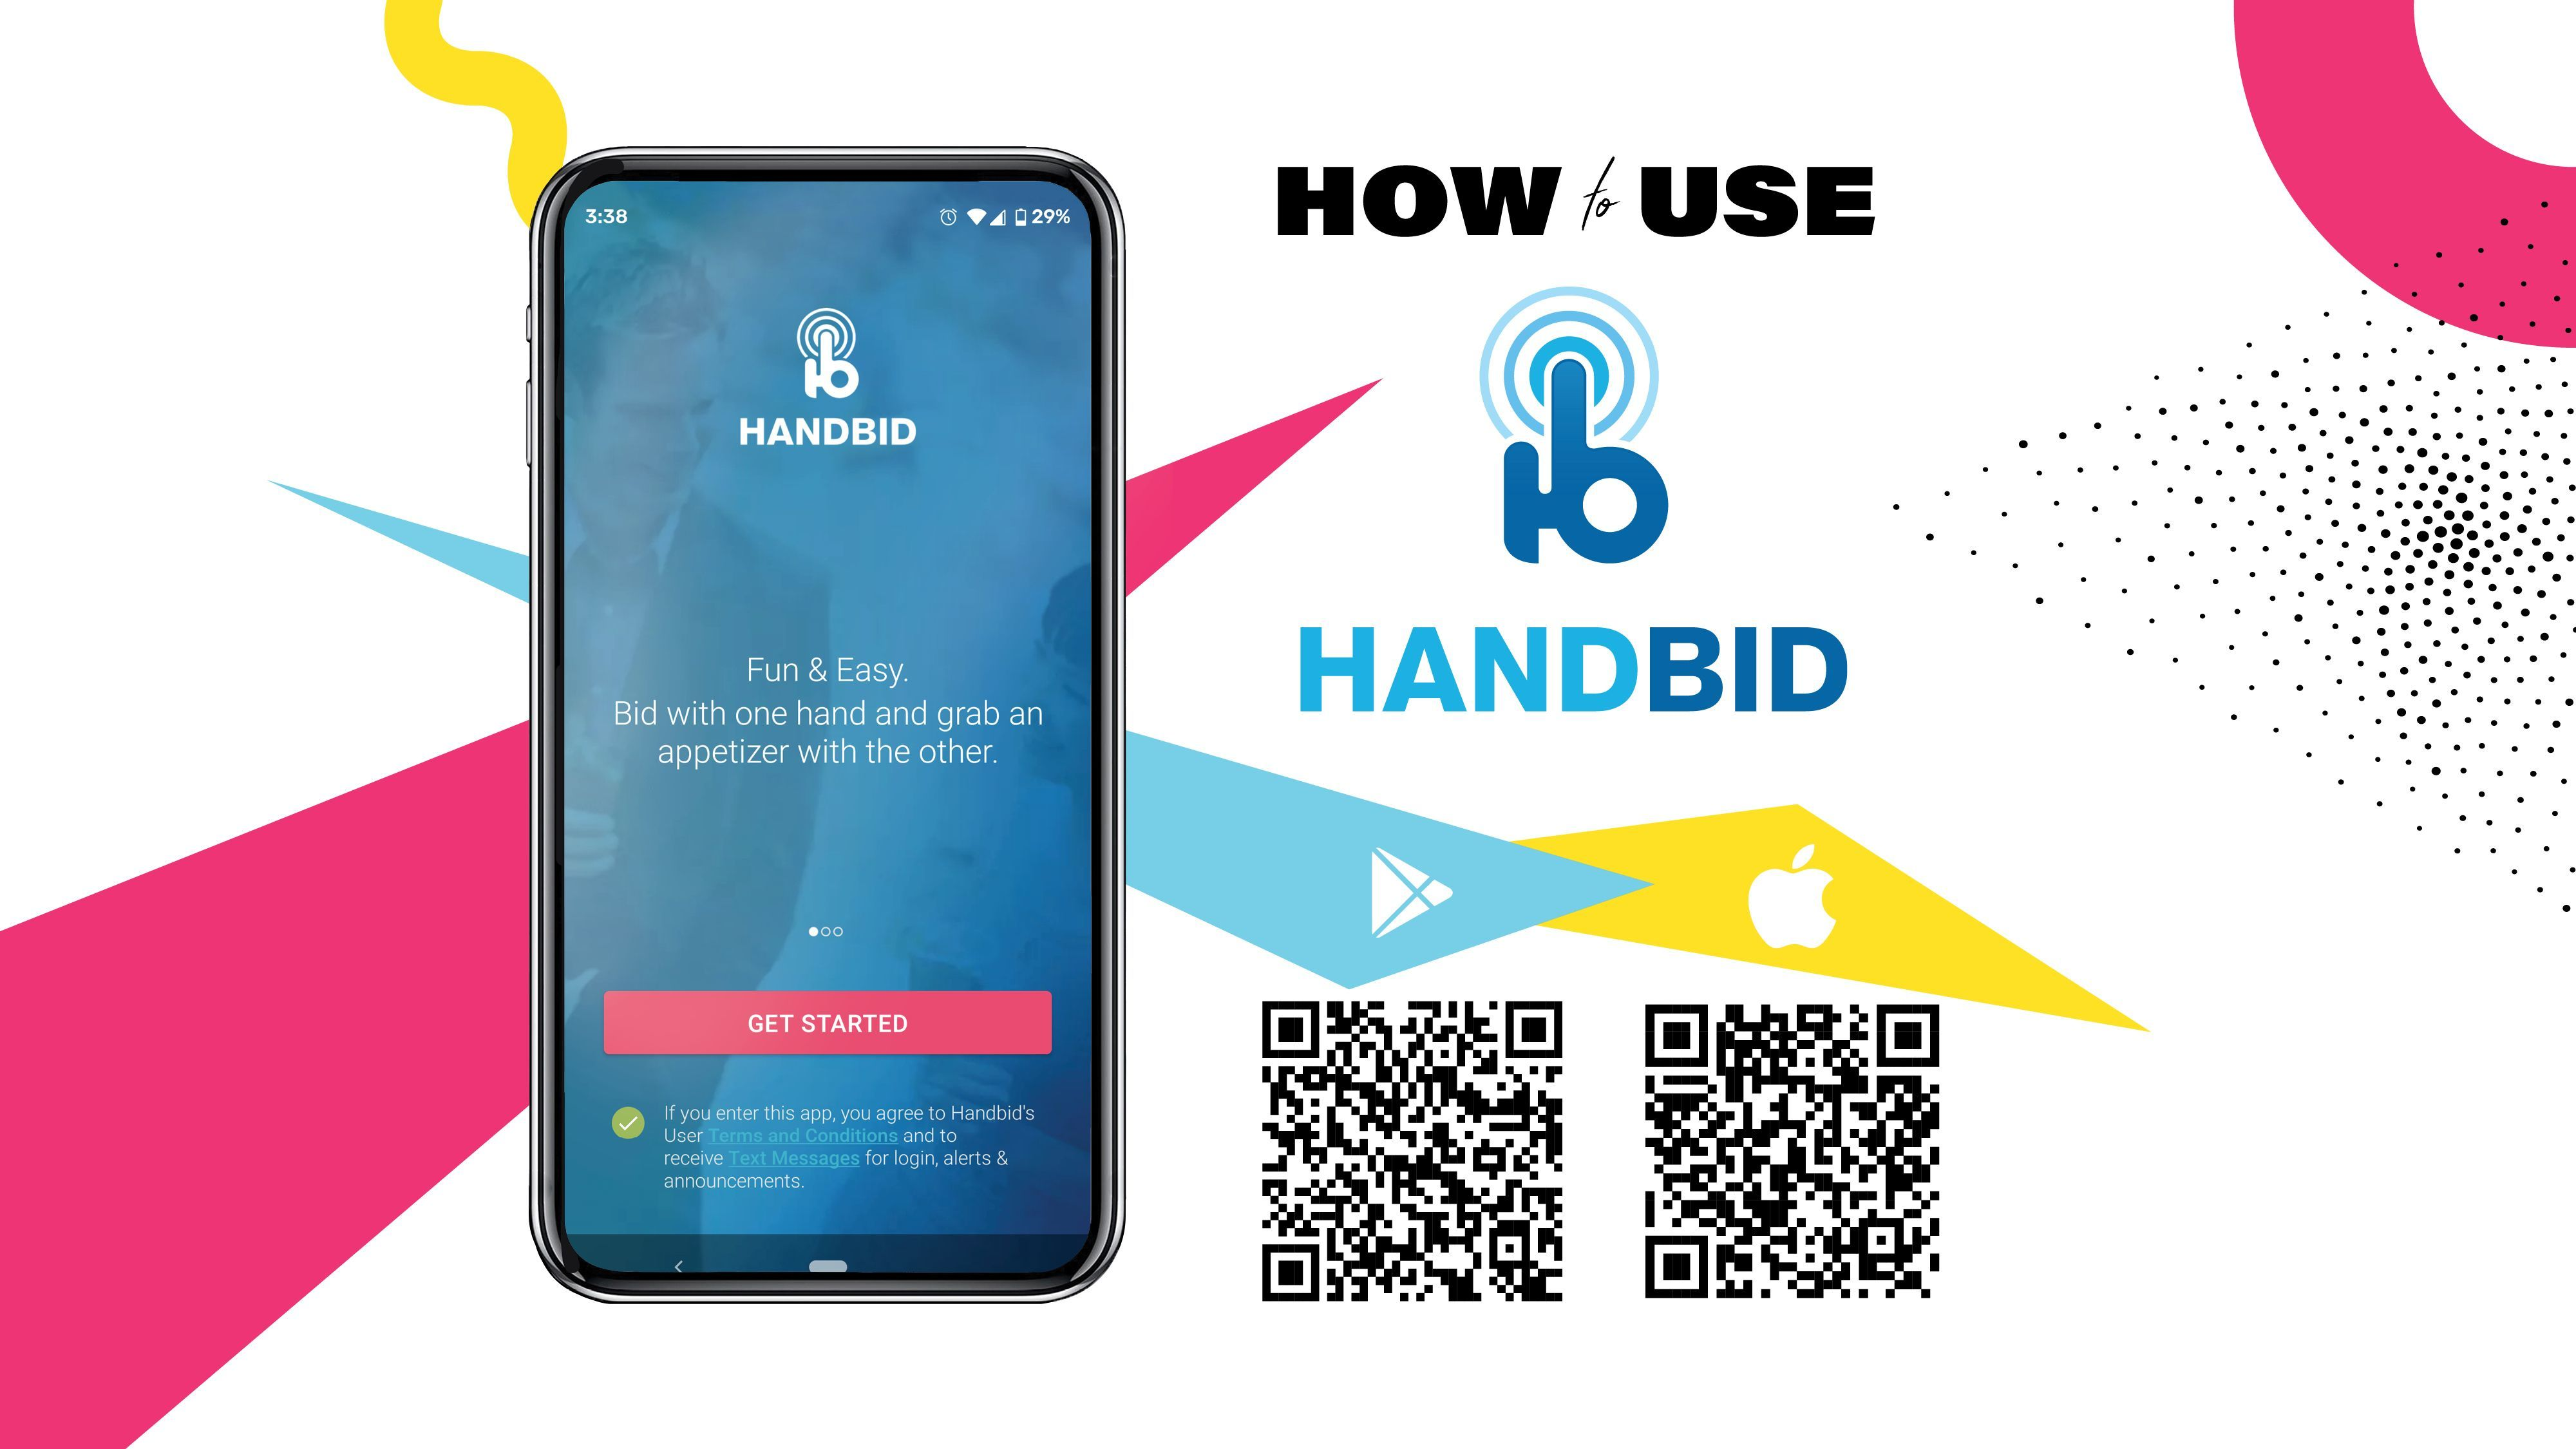 Click to learn more about using Handbid!